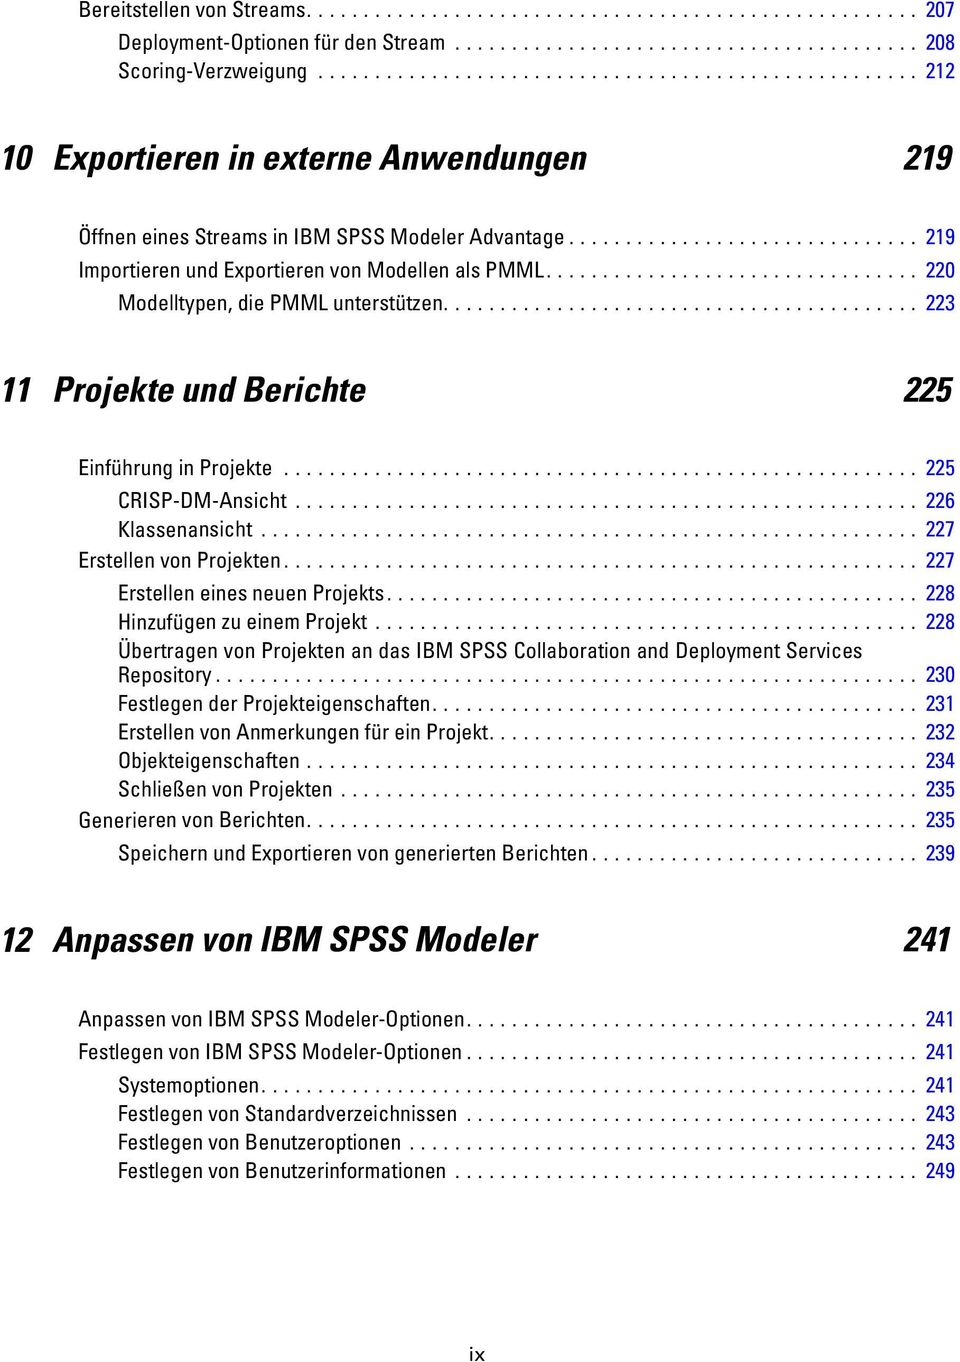 .. 227 rstellenvonprojekten... 227 rstelleneinesneuenprojekts... 228 HinzufügenzueinemProjekt... 228 Übertragen von Projekten an das IBM SPSS Collaboration and Deployment Services Repository.